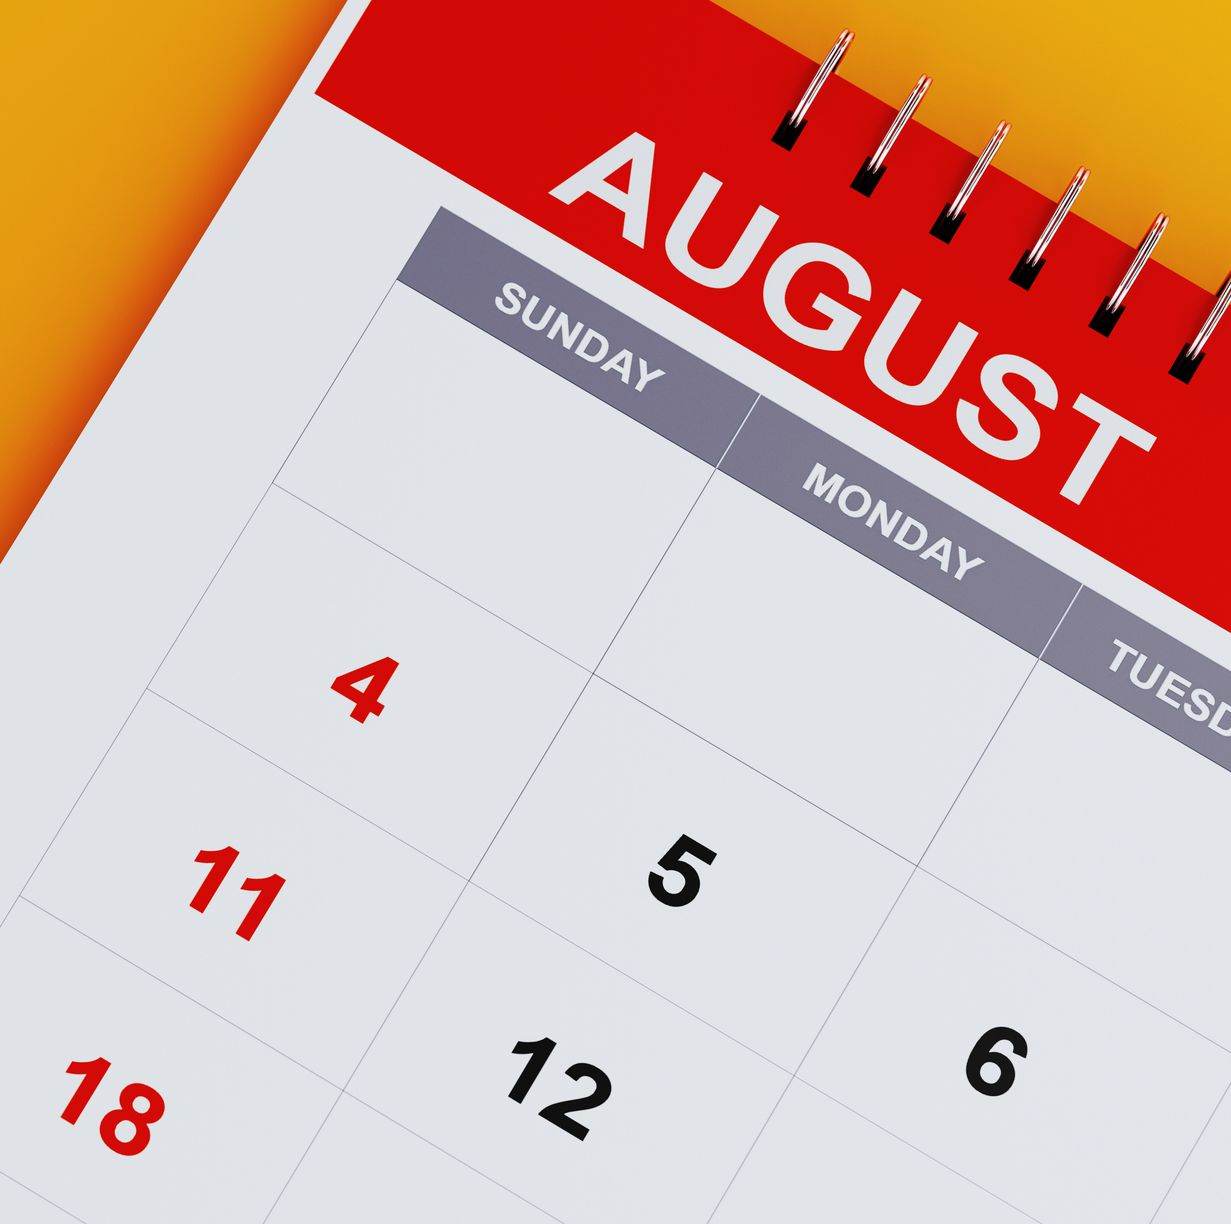 Red August 2019 Calendar On Yellow Background